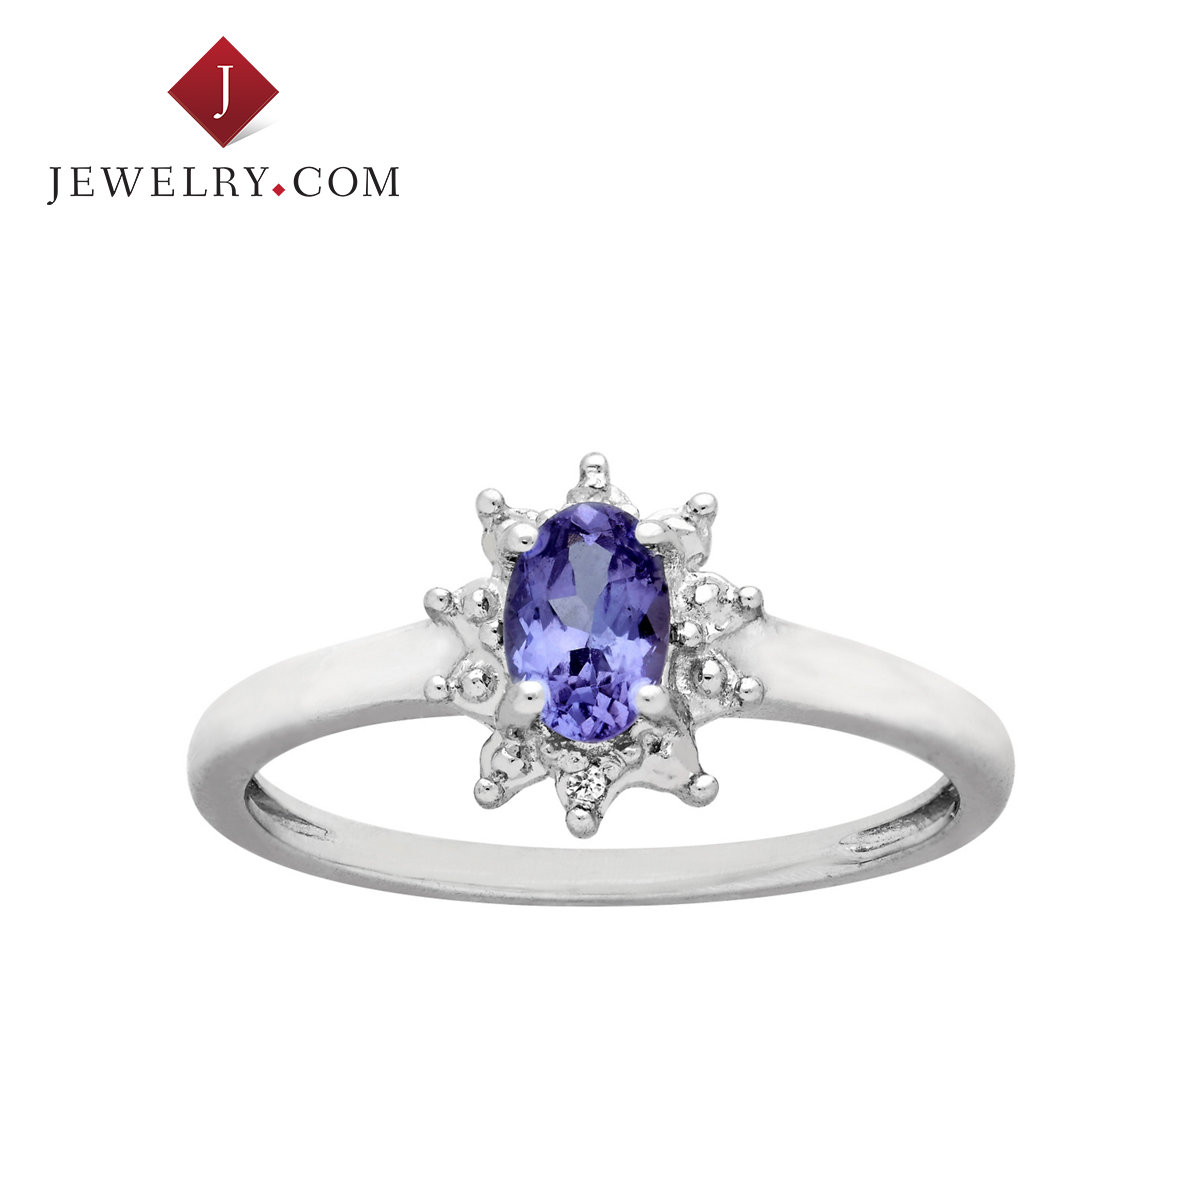 Jewelry.com official 0.375 karat tanzanite diamond ring nvjie 925 silver beads elegant and generous fashion treasure